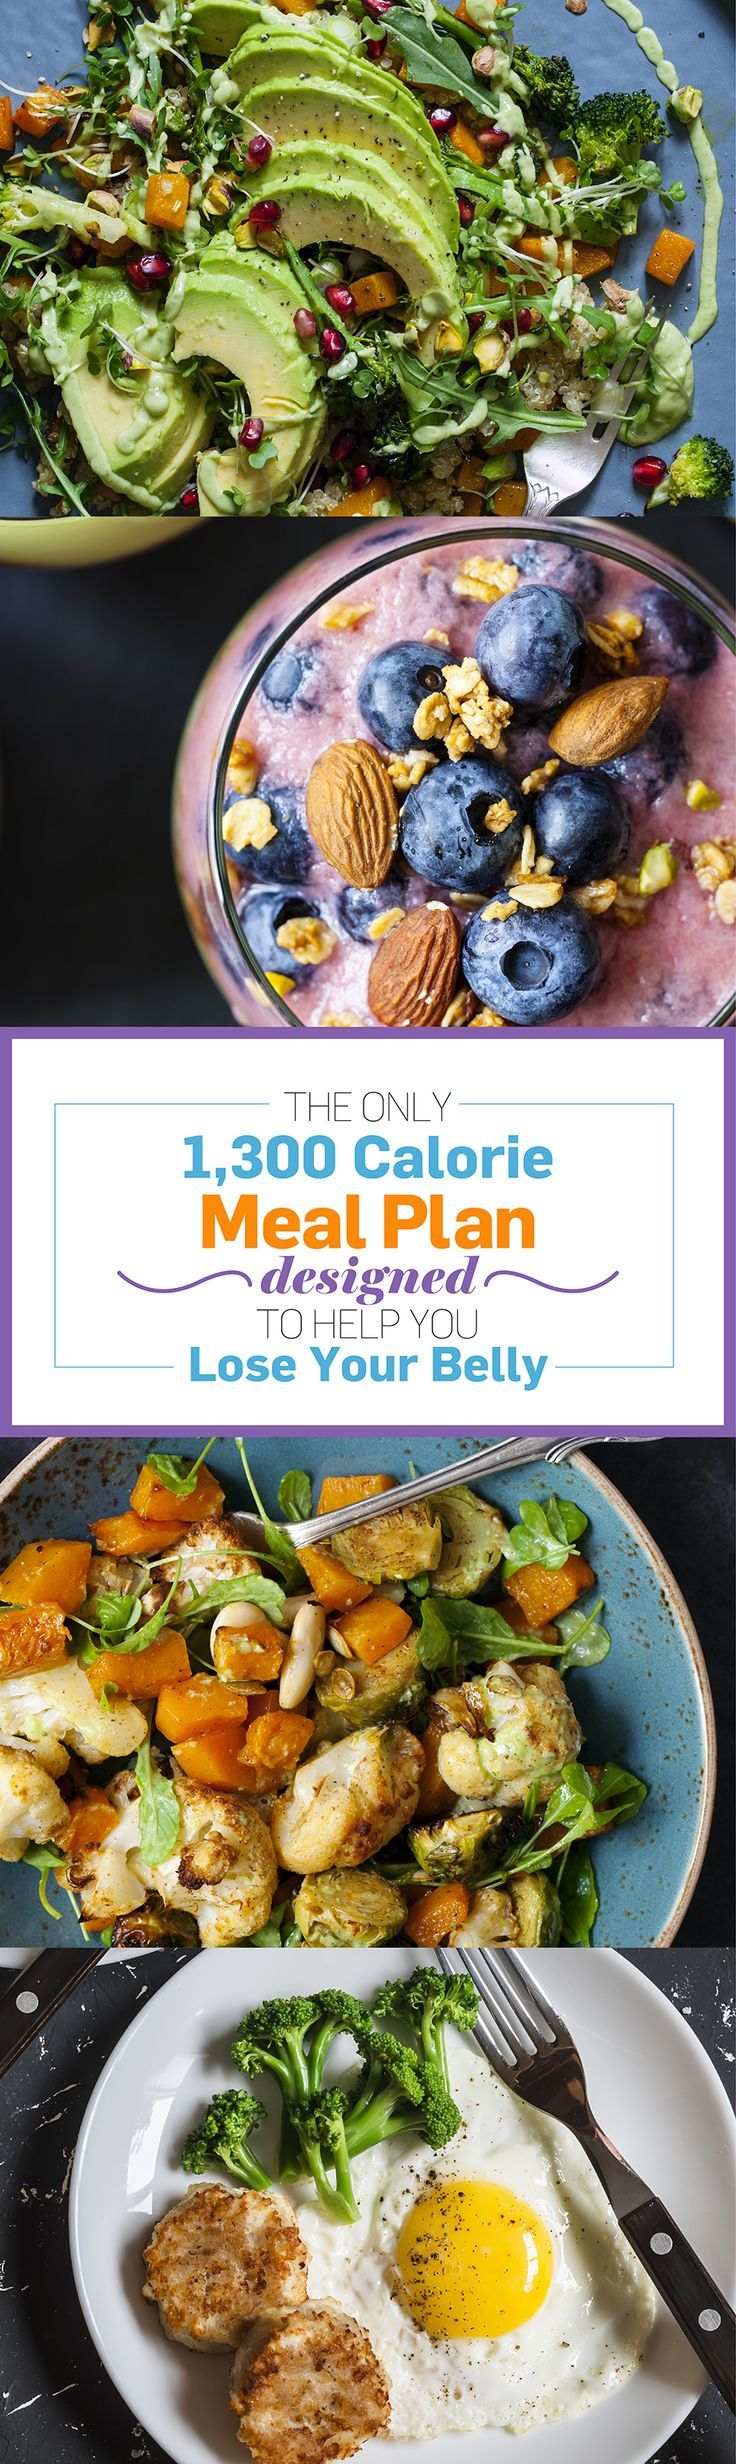 Here you'll find some of our favorite weight loss recipes to get you through the week. Each day (complete with three healthy meals) comes out to under 1,300 calories, which you can add to with any of our flat-belly approved snacks.